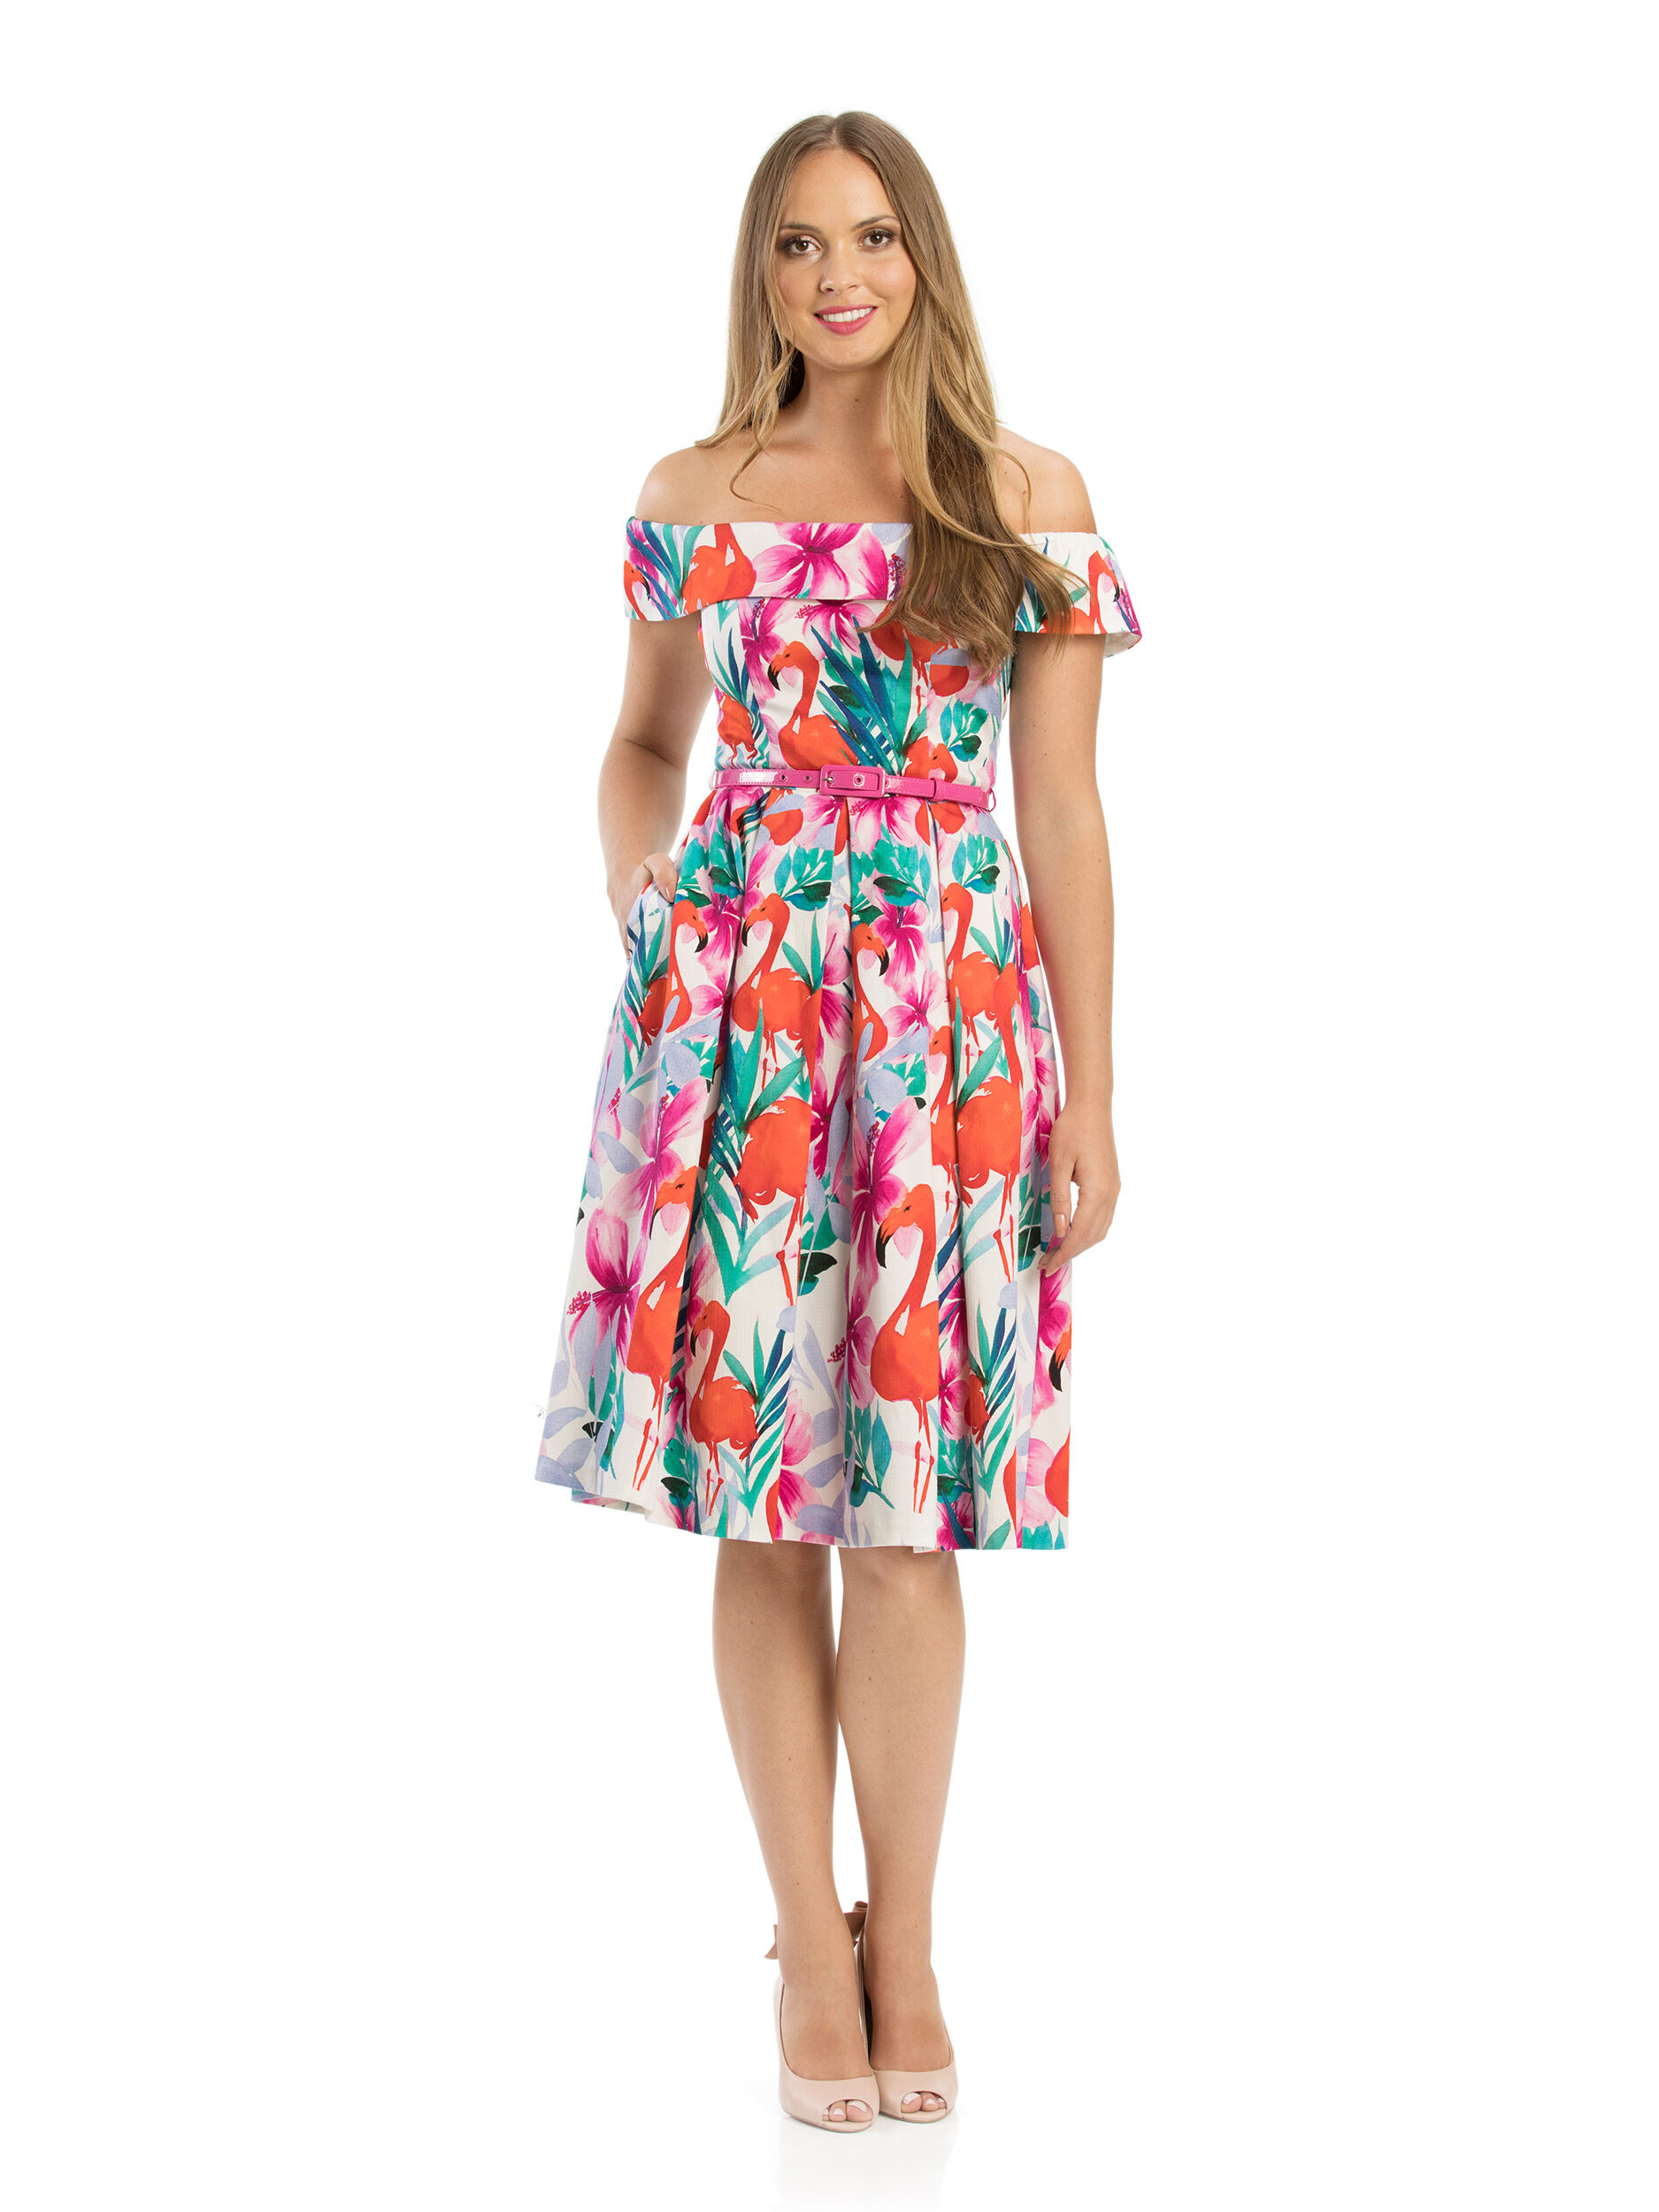 Prancing Flamingo Dress